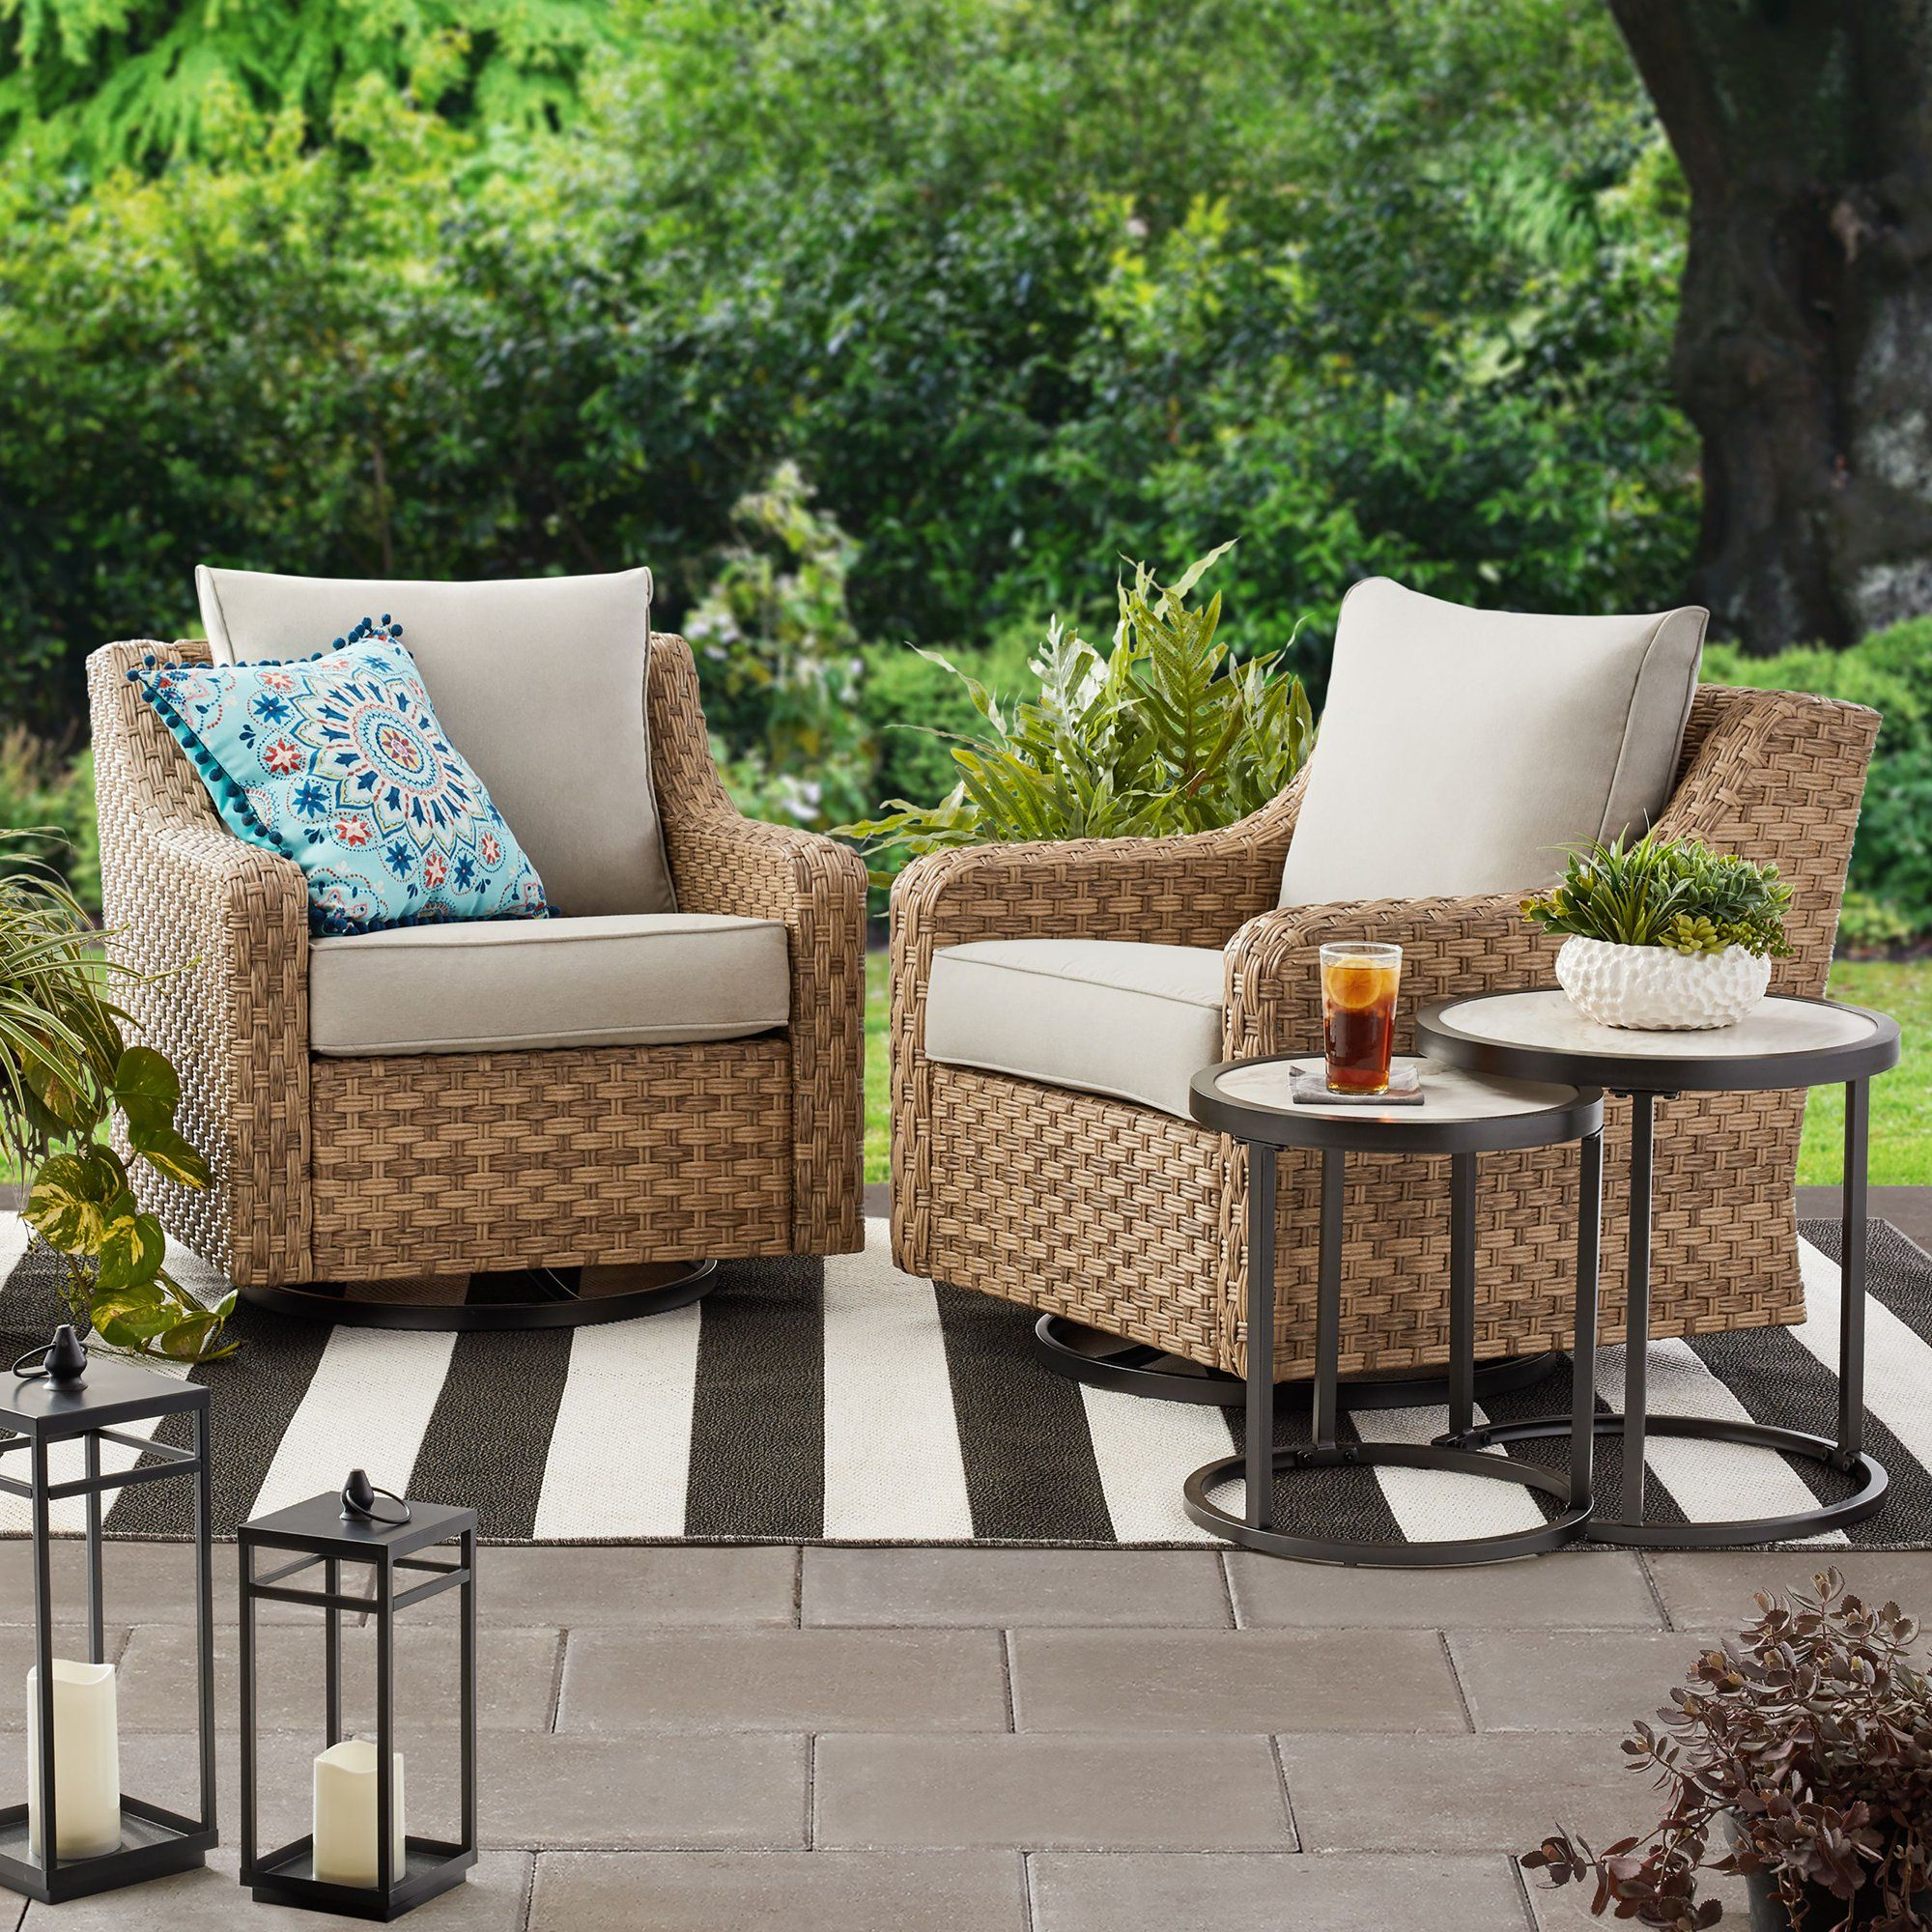 Better Homes Gardens River Oaks 2 Piece Swivel Gliders With Patio Covers Walmart Com Wa Outdoor Swivel Chair Outdoor Wicker Chairs Wicker Patio Furniture